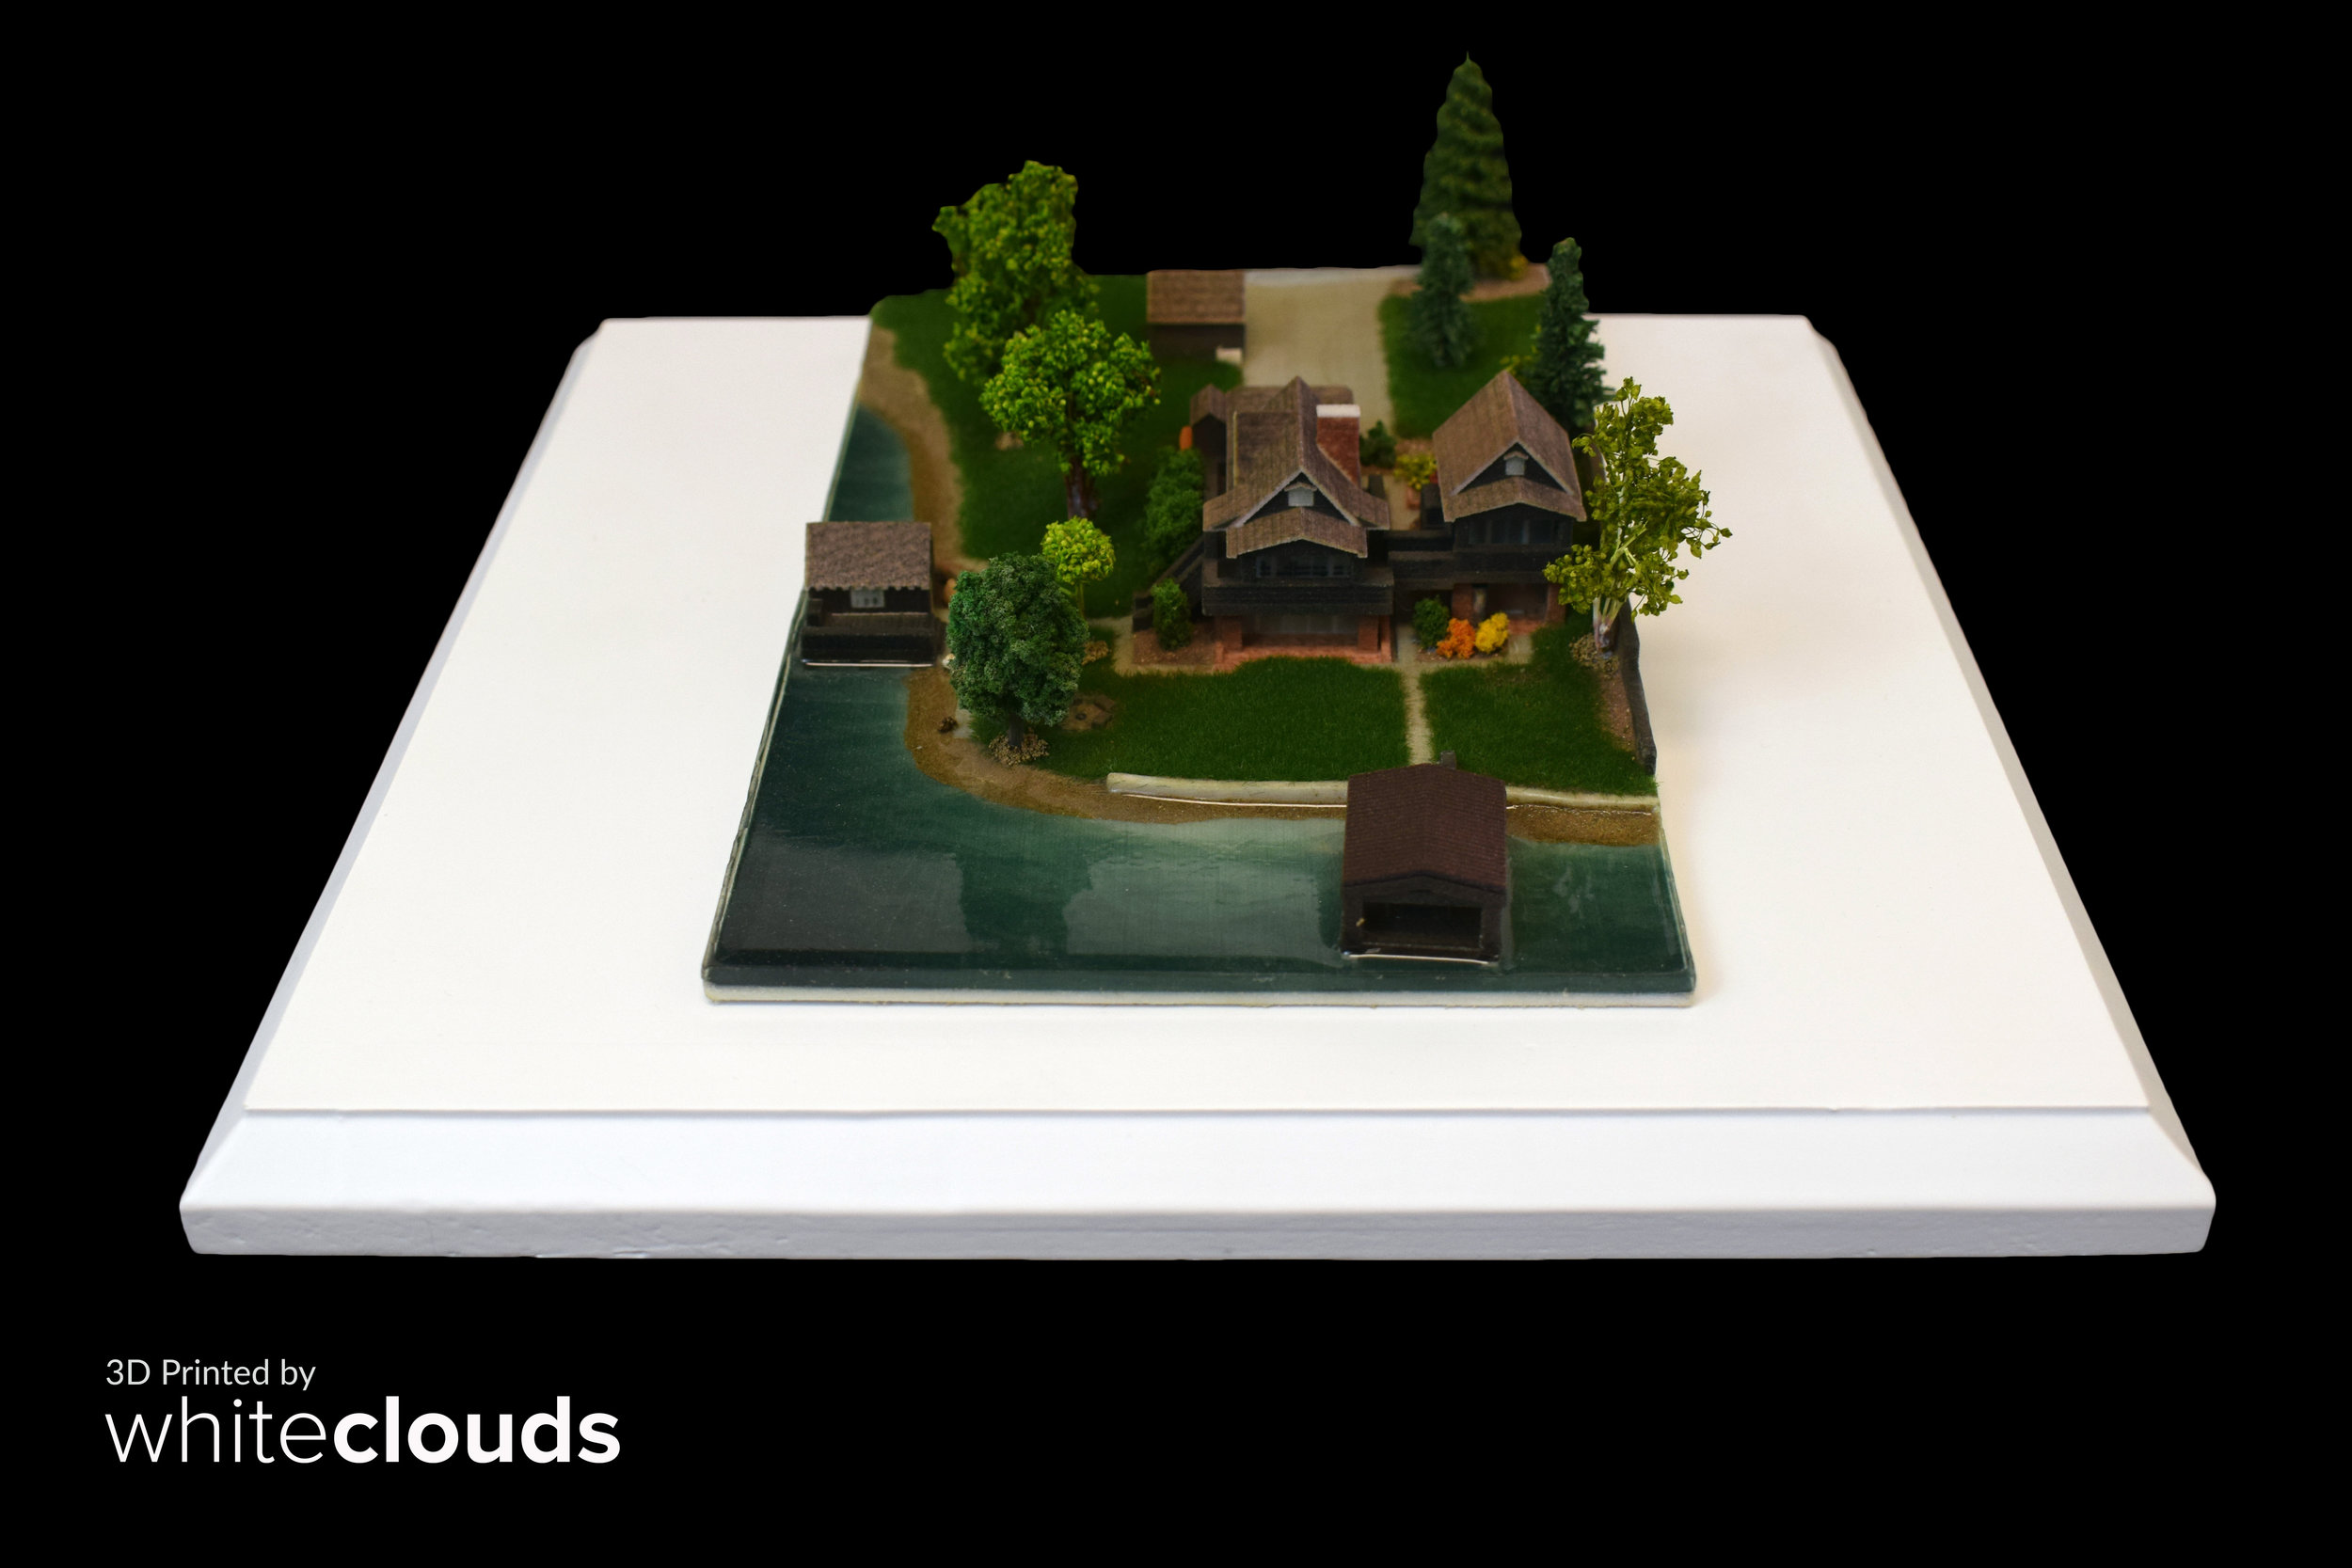 3D-Printed-WhiteClouds-Lake-House-Architecture-Eliermann-Family-Lake-House-2.JPG